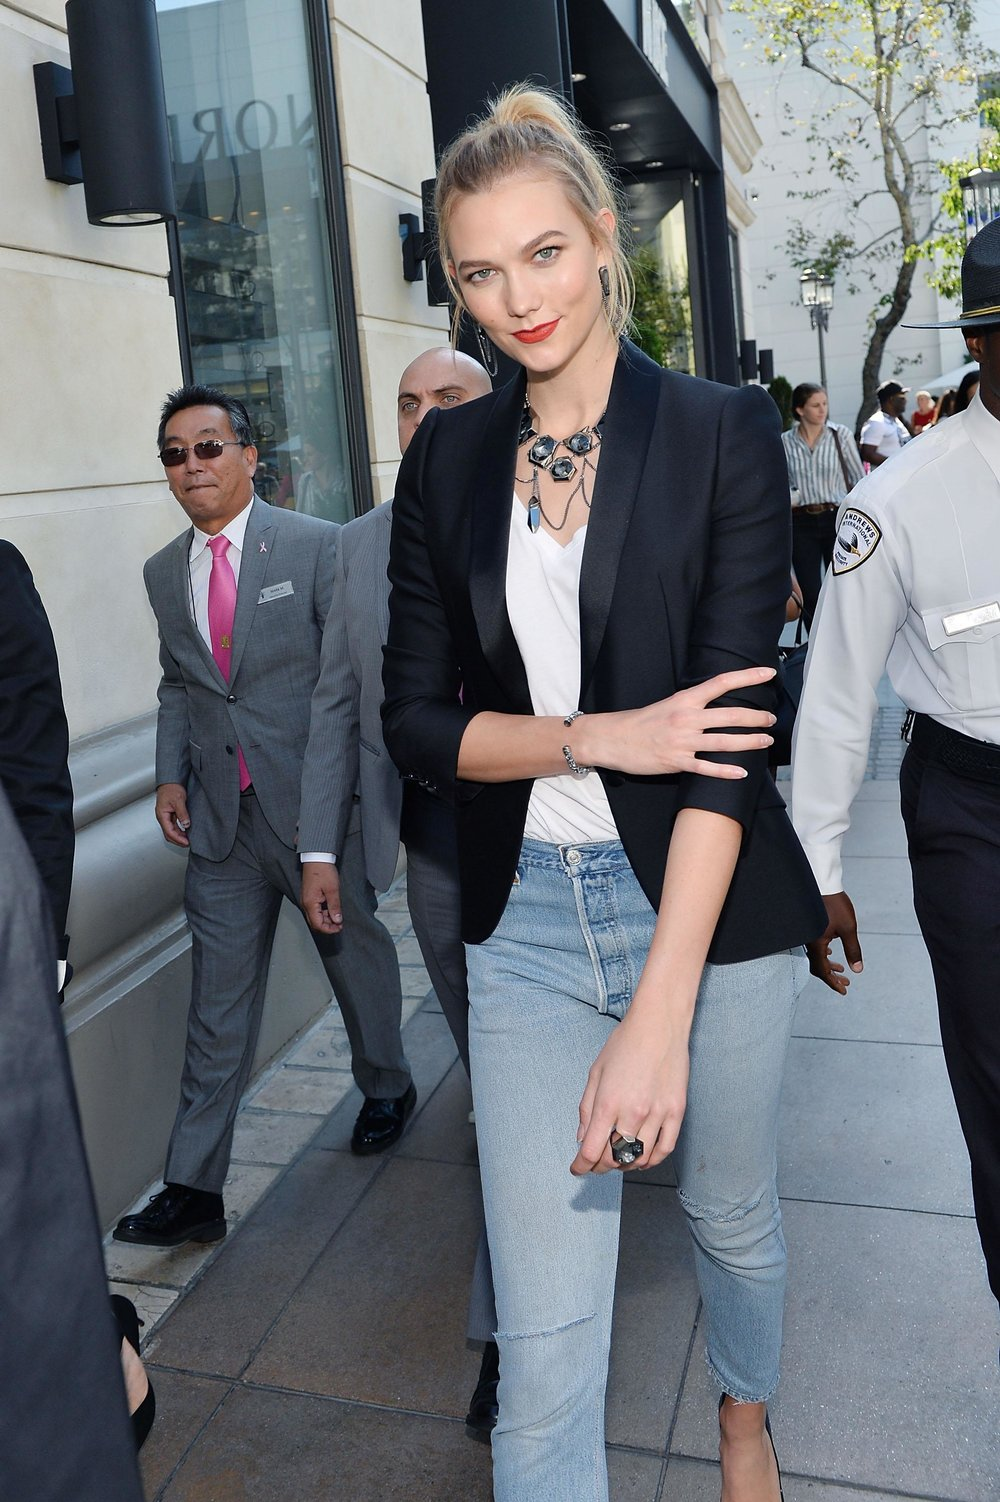 KARLIE KLOSS SPOTTED AT THE GROVE.jpg